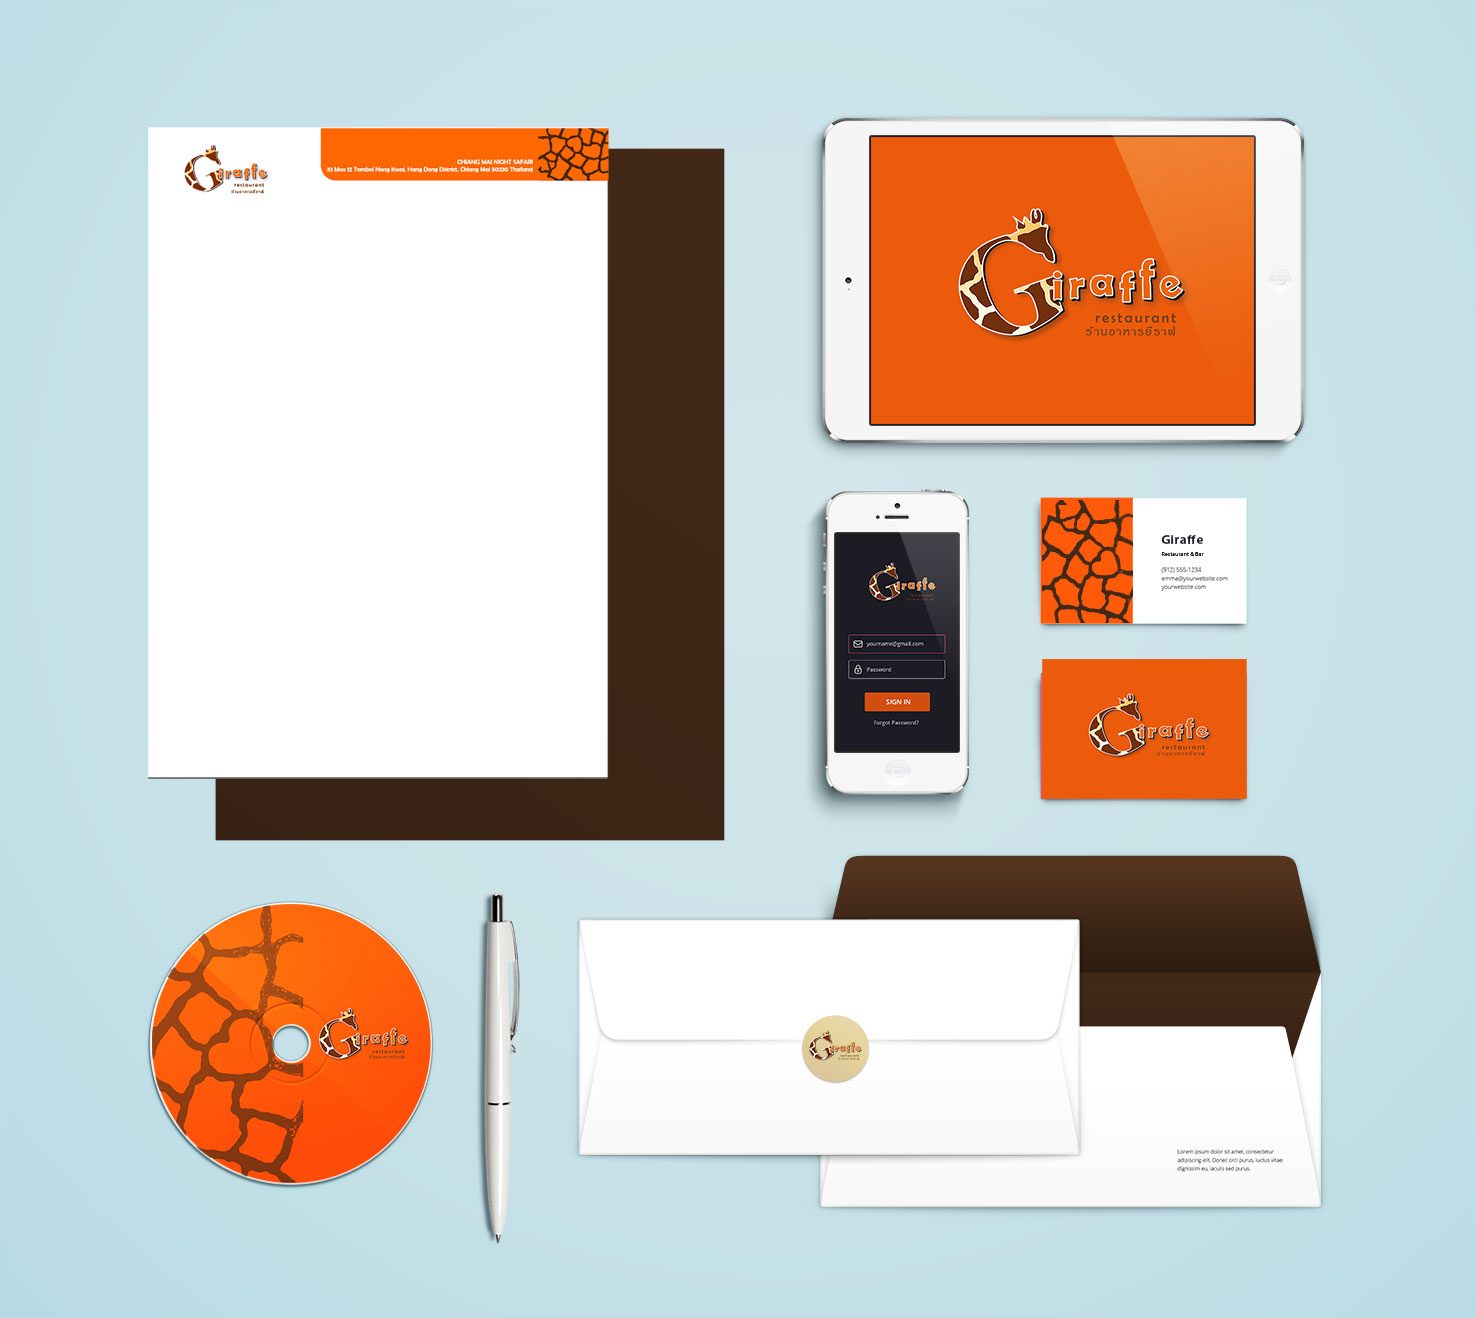 brand identiry design for a stationary mockup